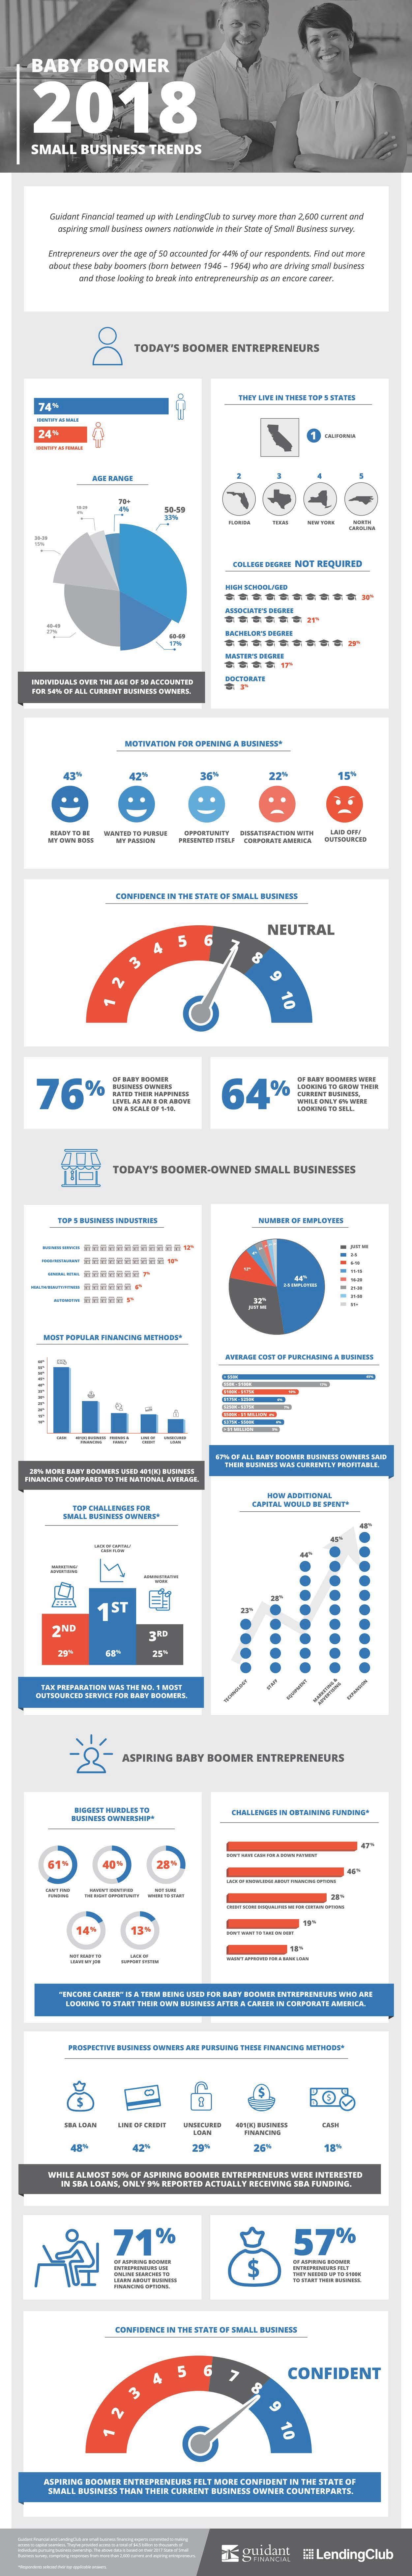 Baby Boomer business facts